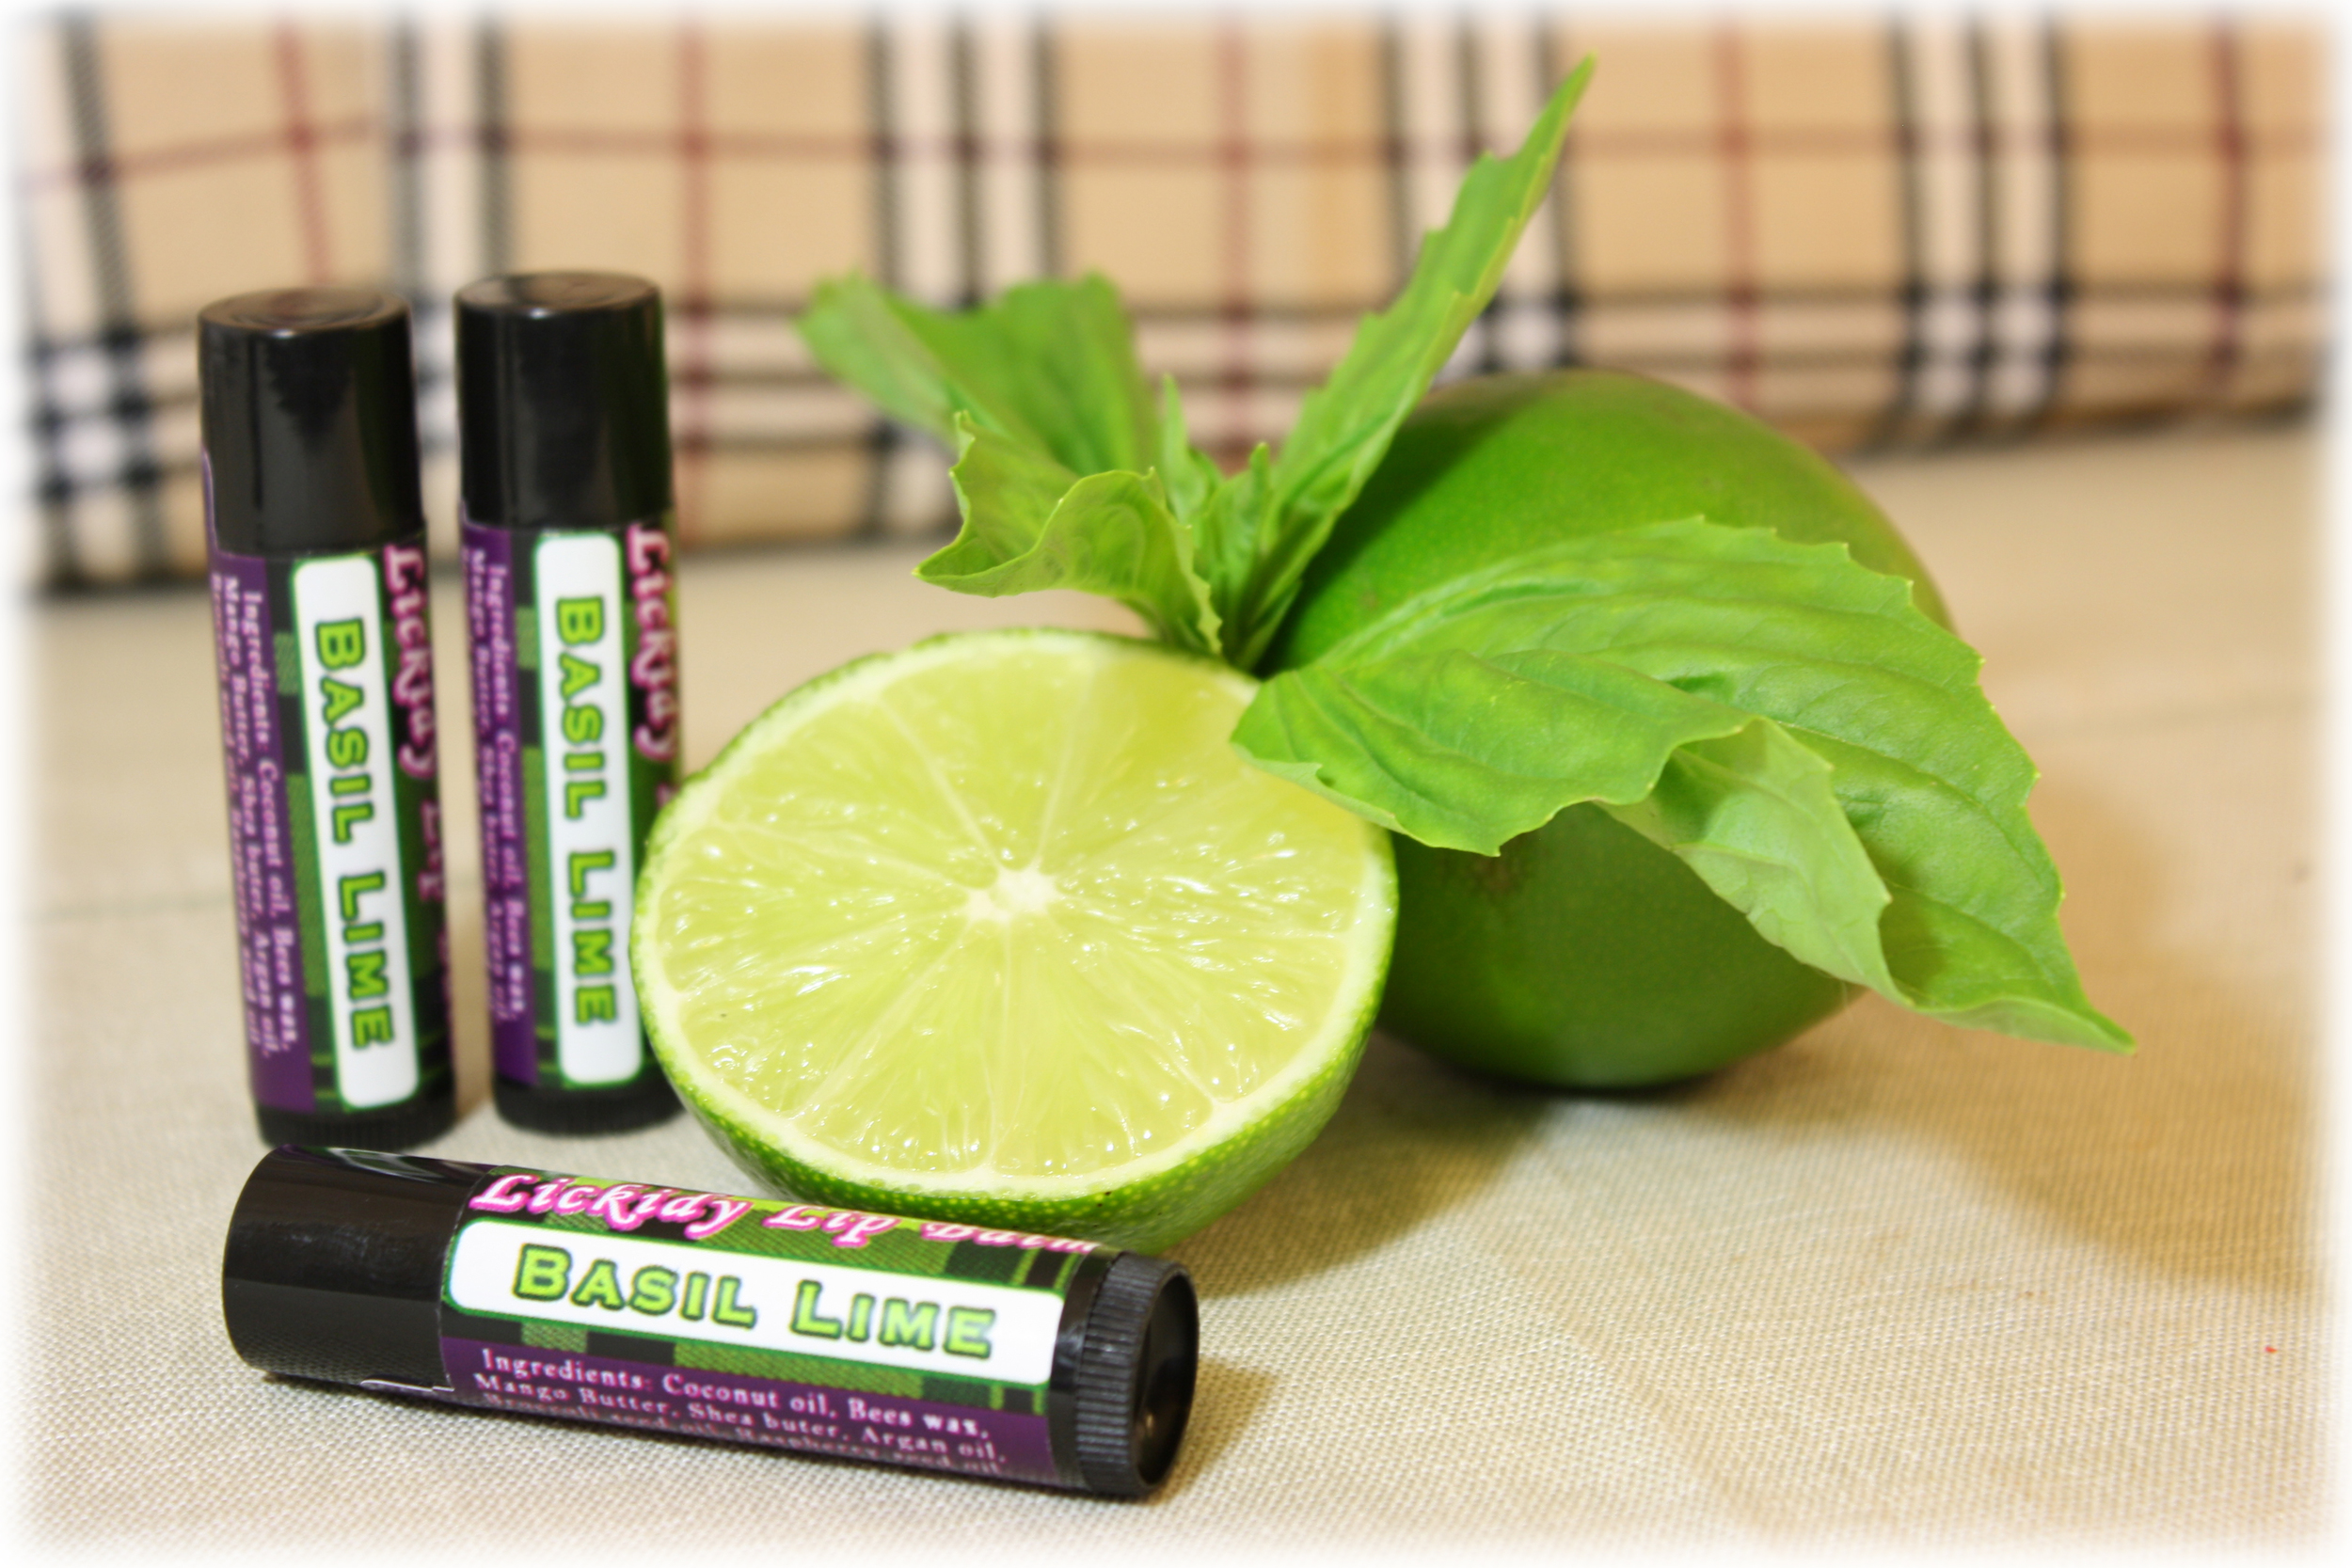 Basil Lime Lip Balm